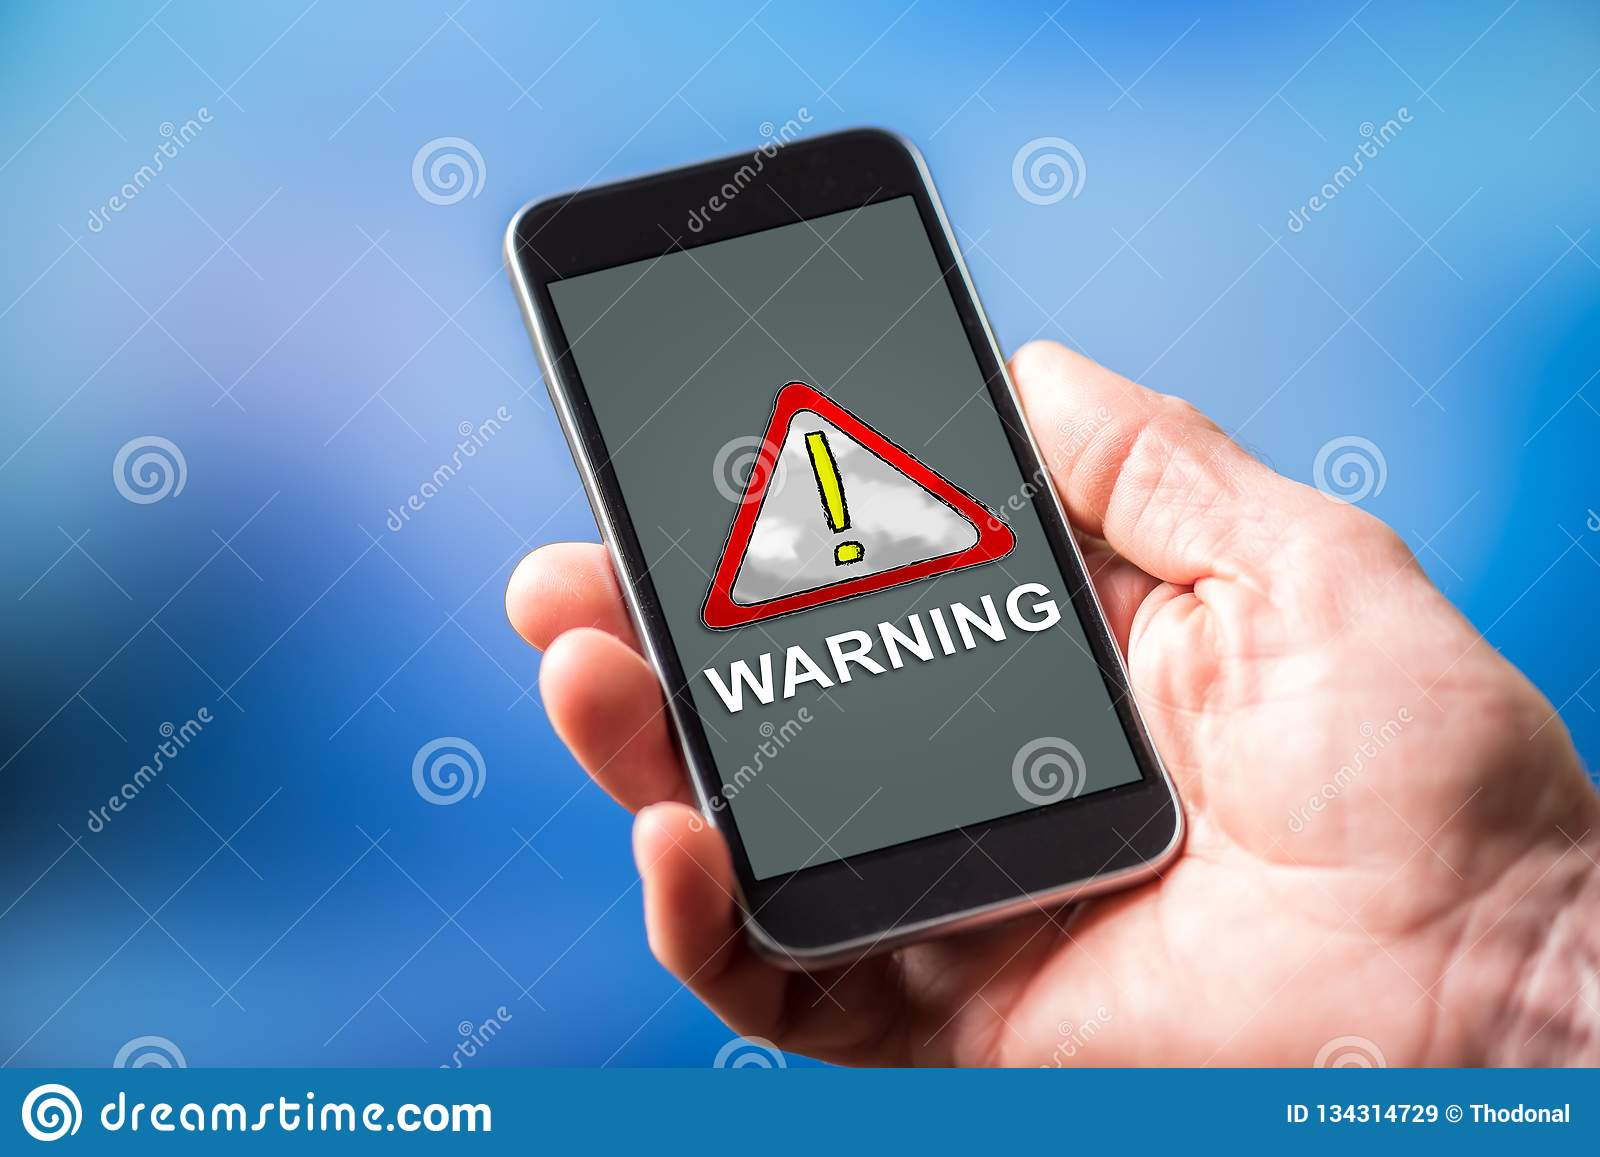 Warning concept on a smartphone